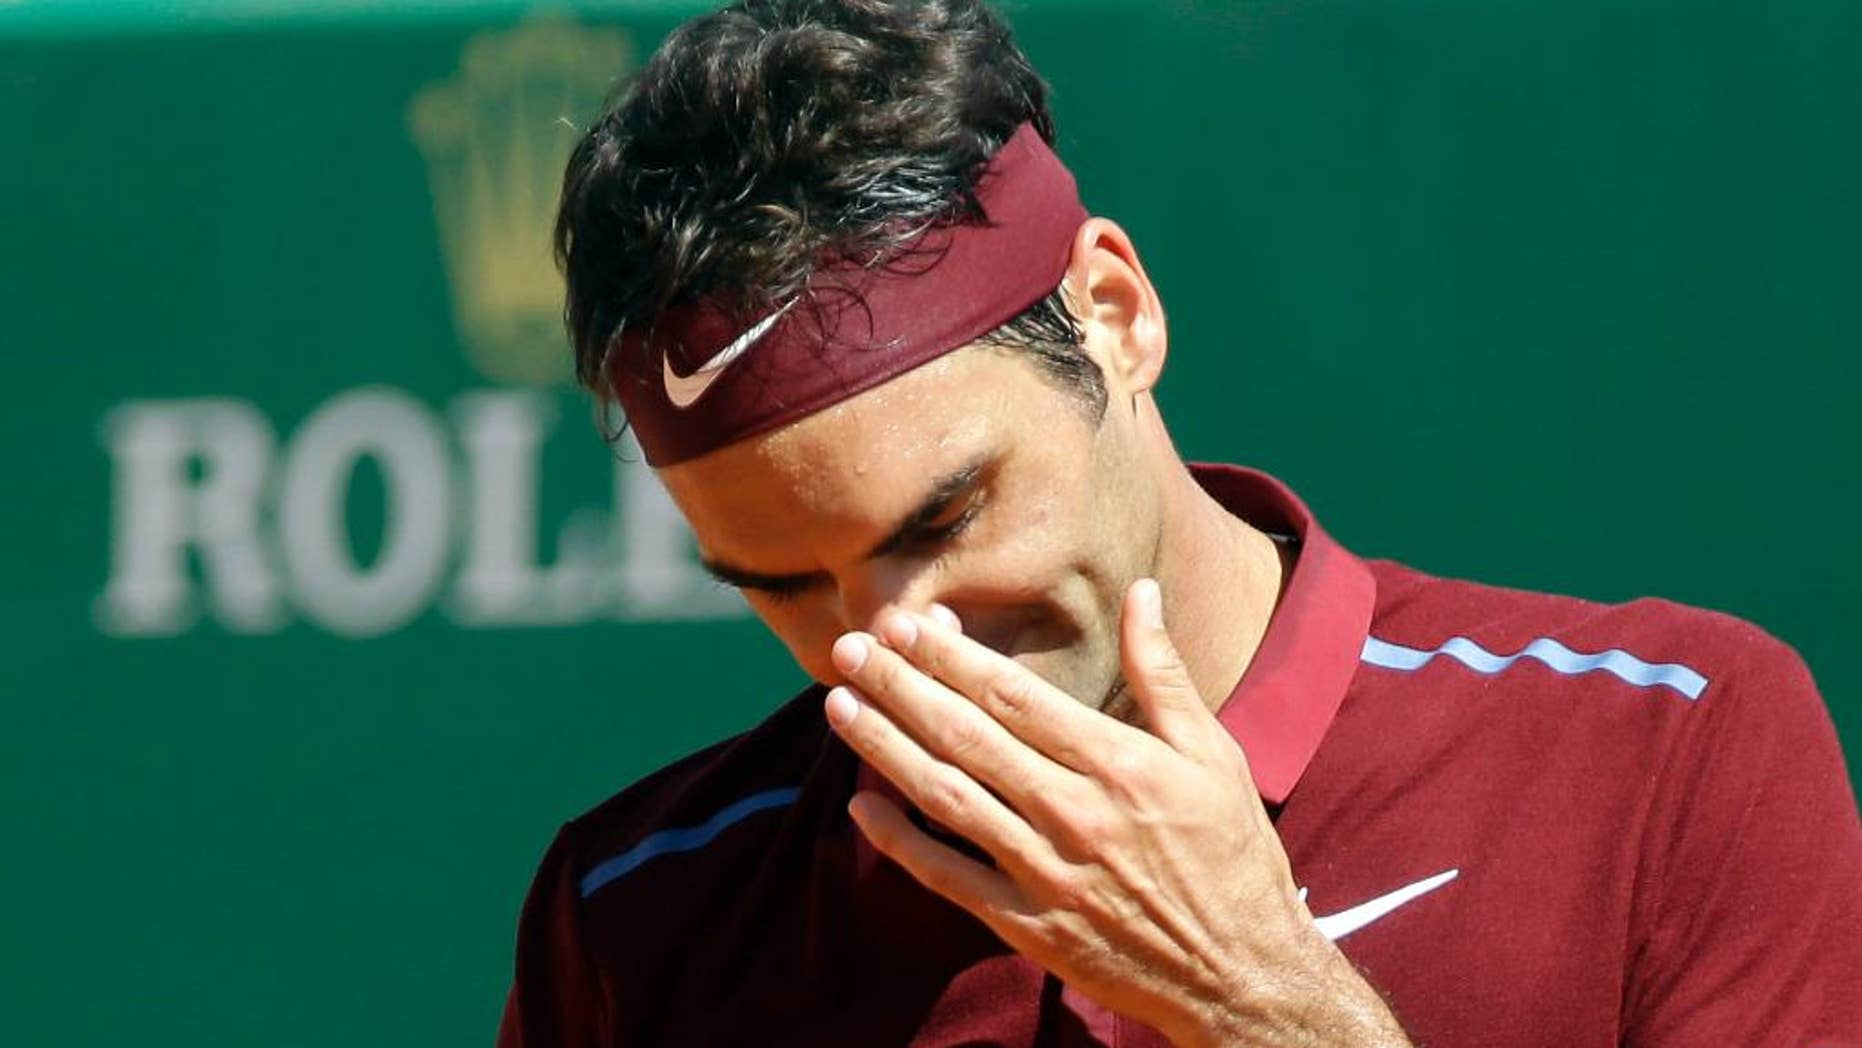 FILE- In this April 15, 2016 file photo, Swiss Roger Federer gestures during his quarter final match of the Monte Carlo Tennis Masters tournament against France's Jo-Wilfried Tsonga, in Monaco. Roger Federer withdrew from the Madrid Masters on Monday because of a back injury. (AP Photo/Lionel Cironneau, File)